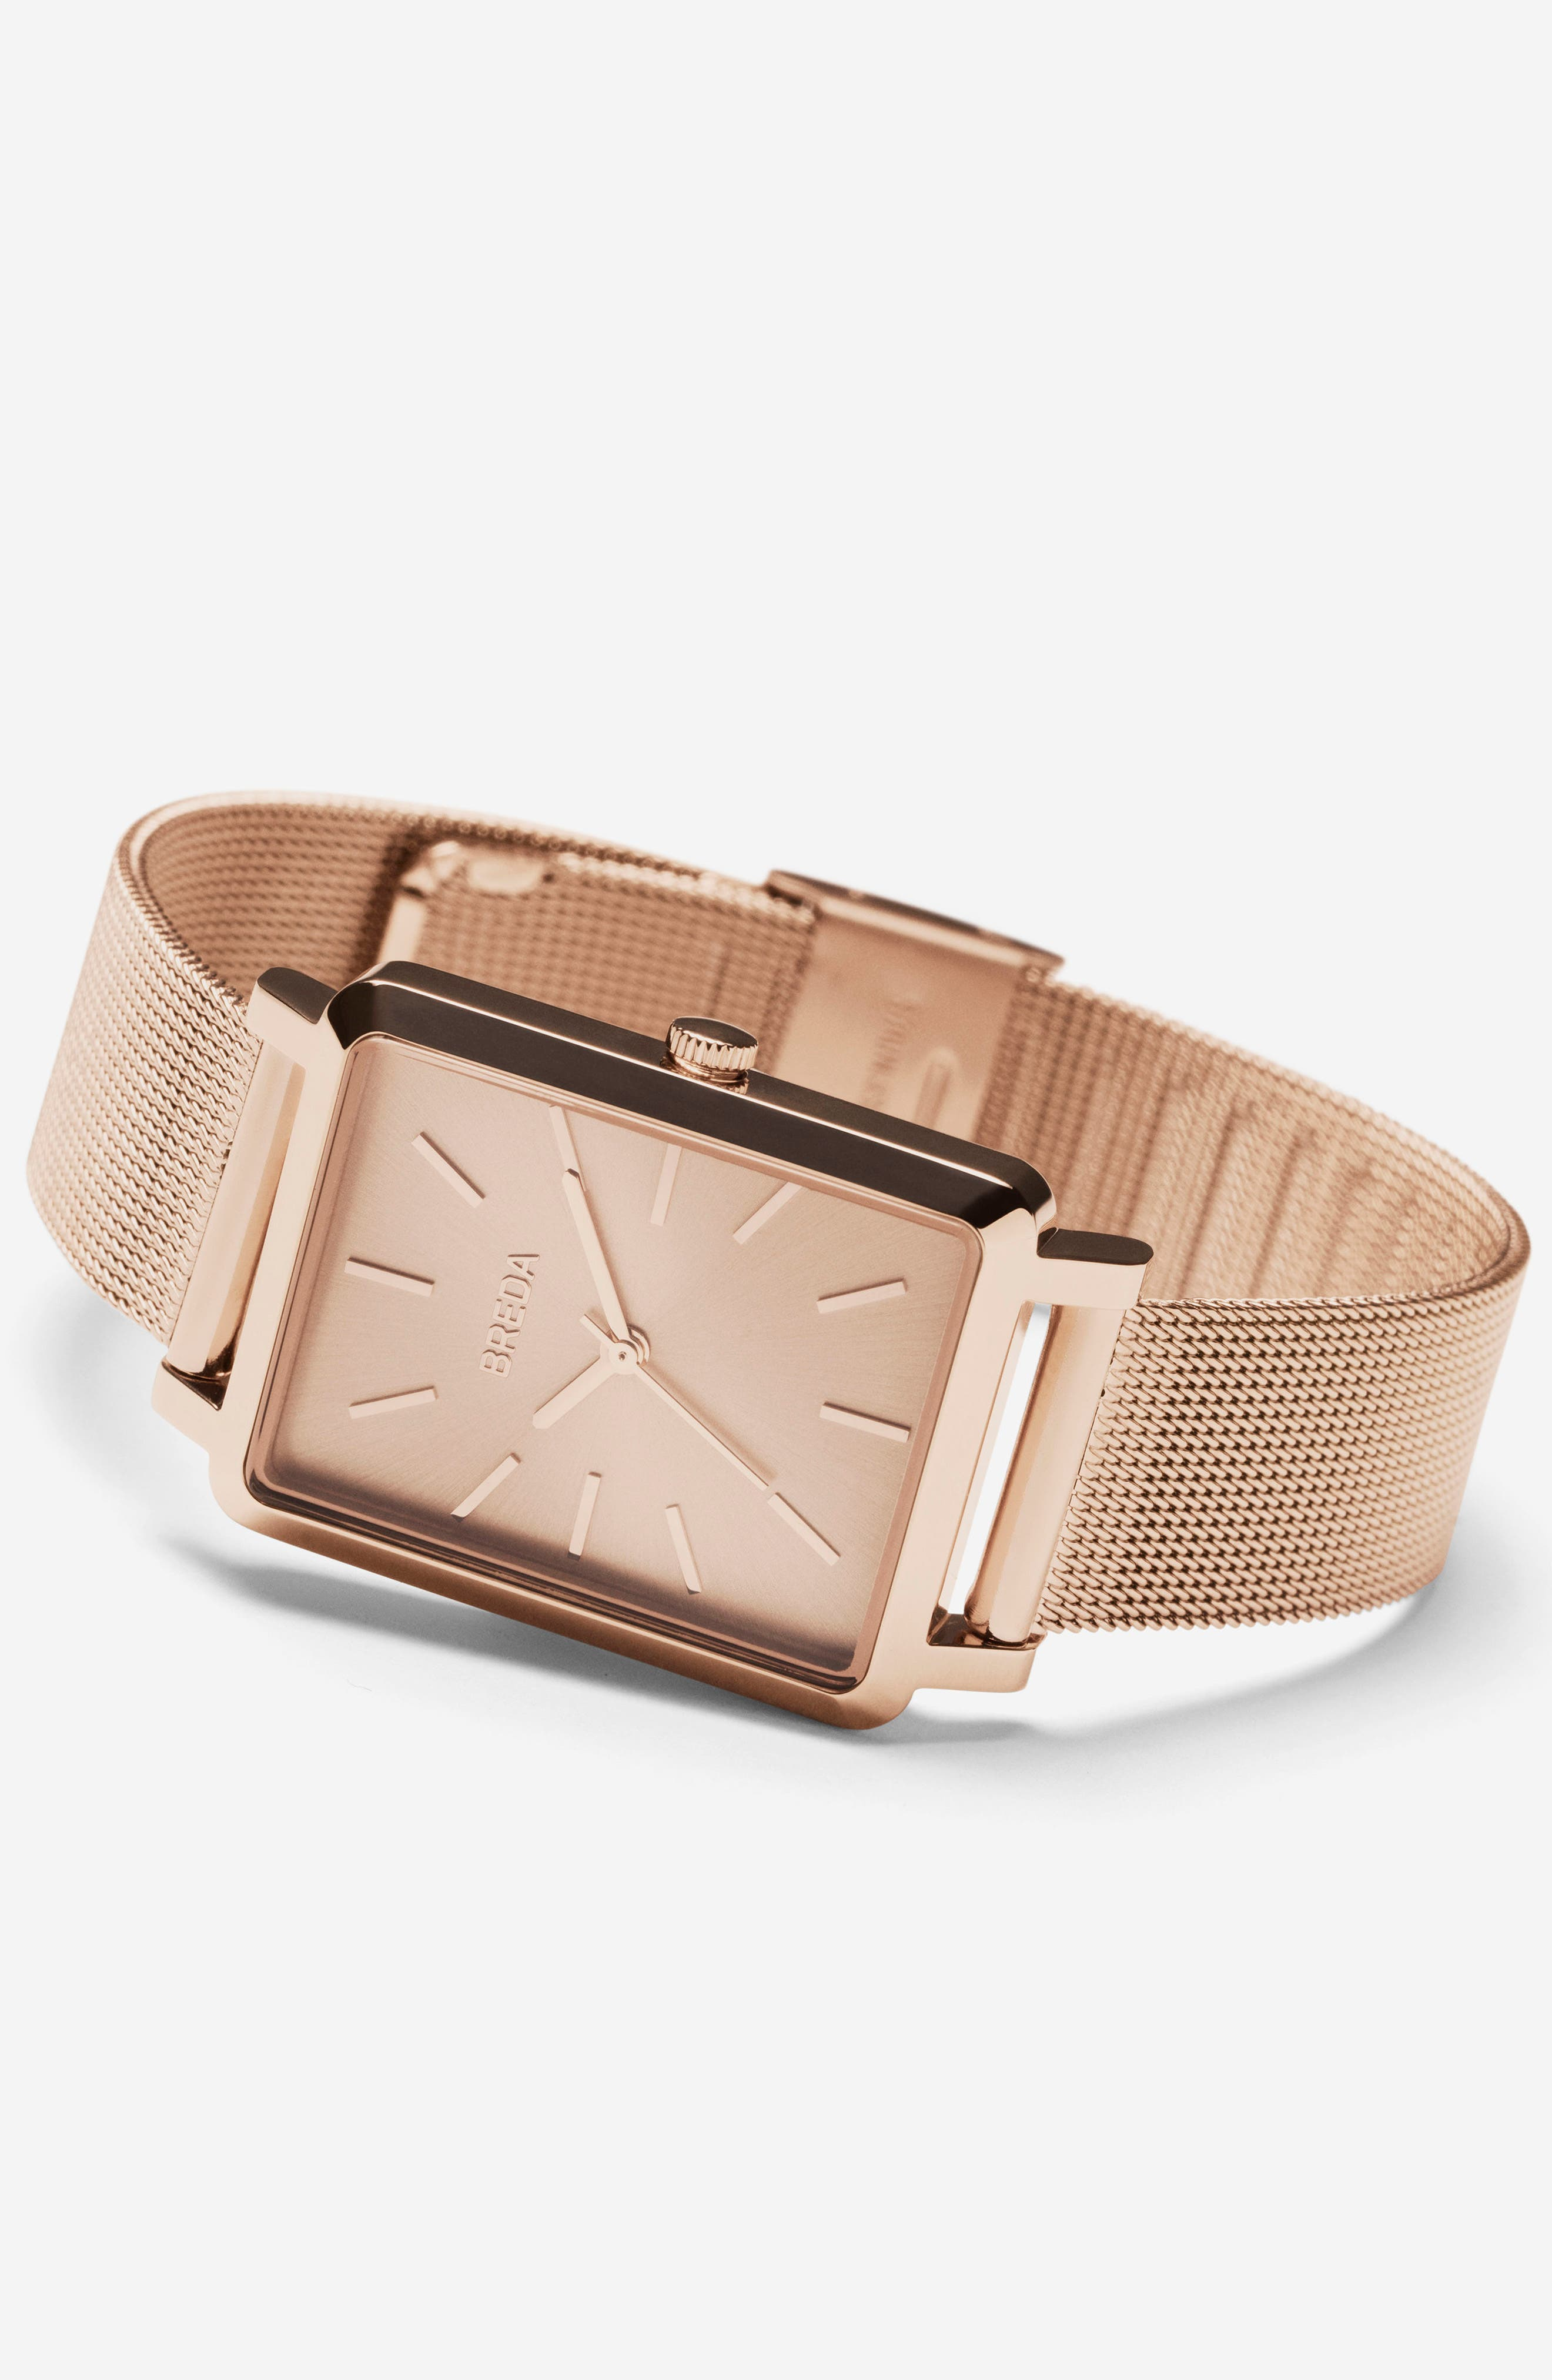 Baer Mesh Strap Watch, 26mm,                             Alternate thumbnail 2, color,                             Rose Gold